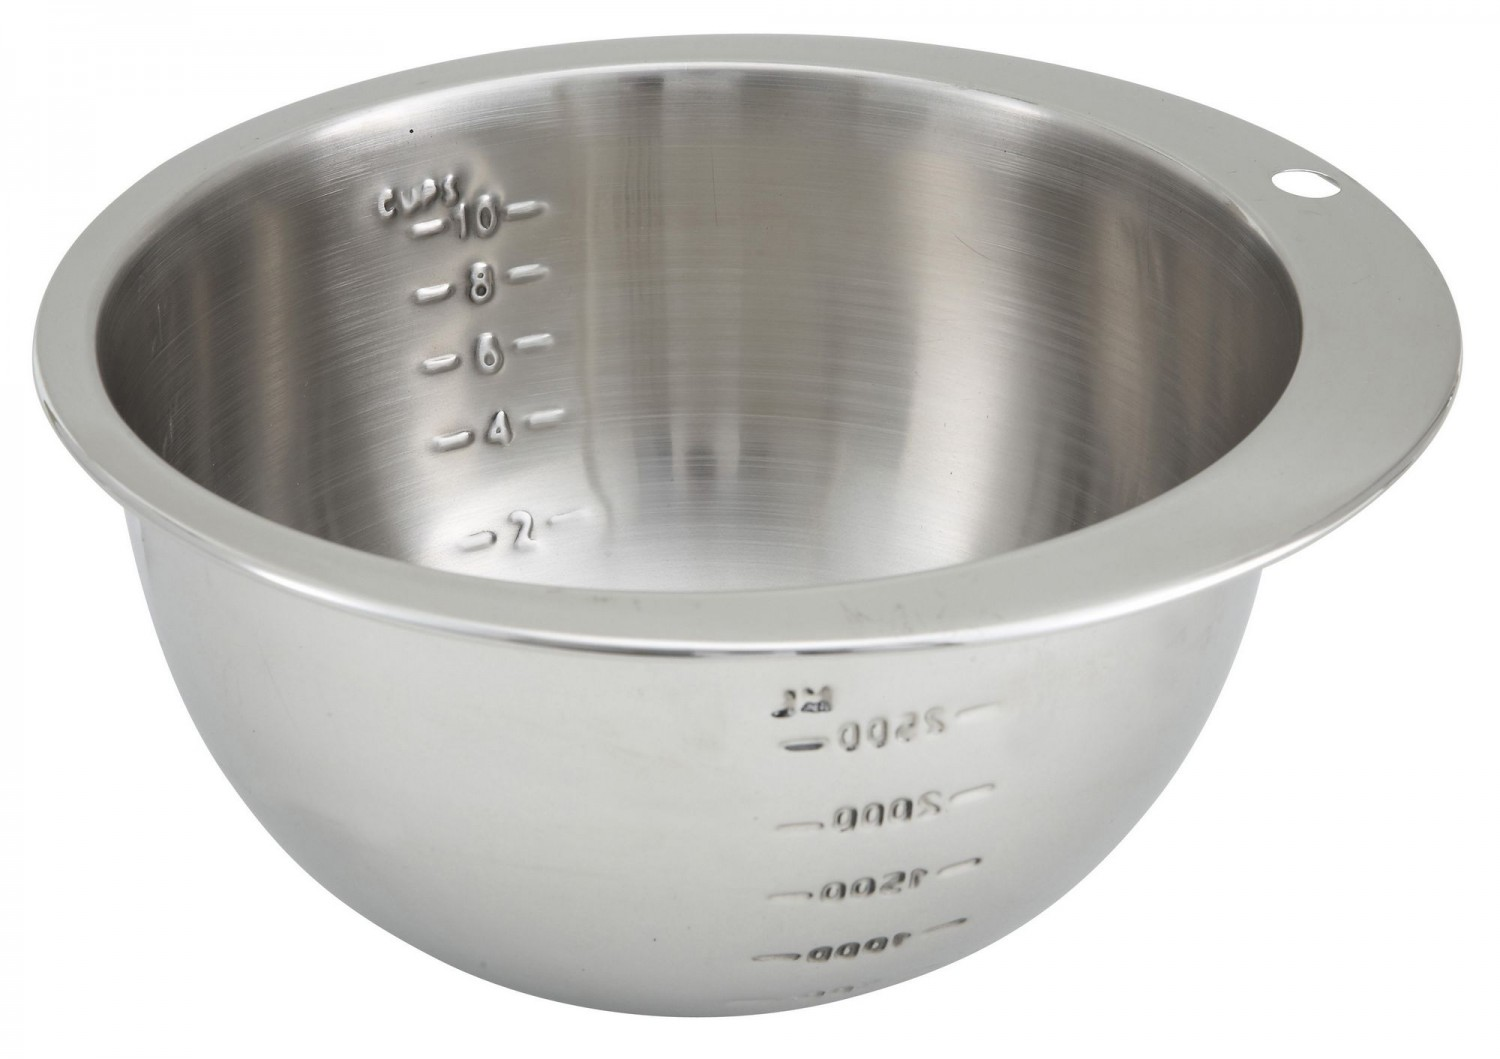 Winco SMB-10 Stainless Steel Measuring Bowl 10 Cup